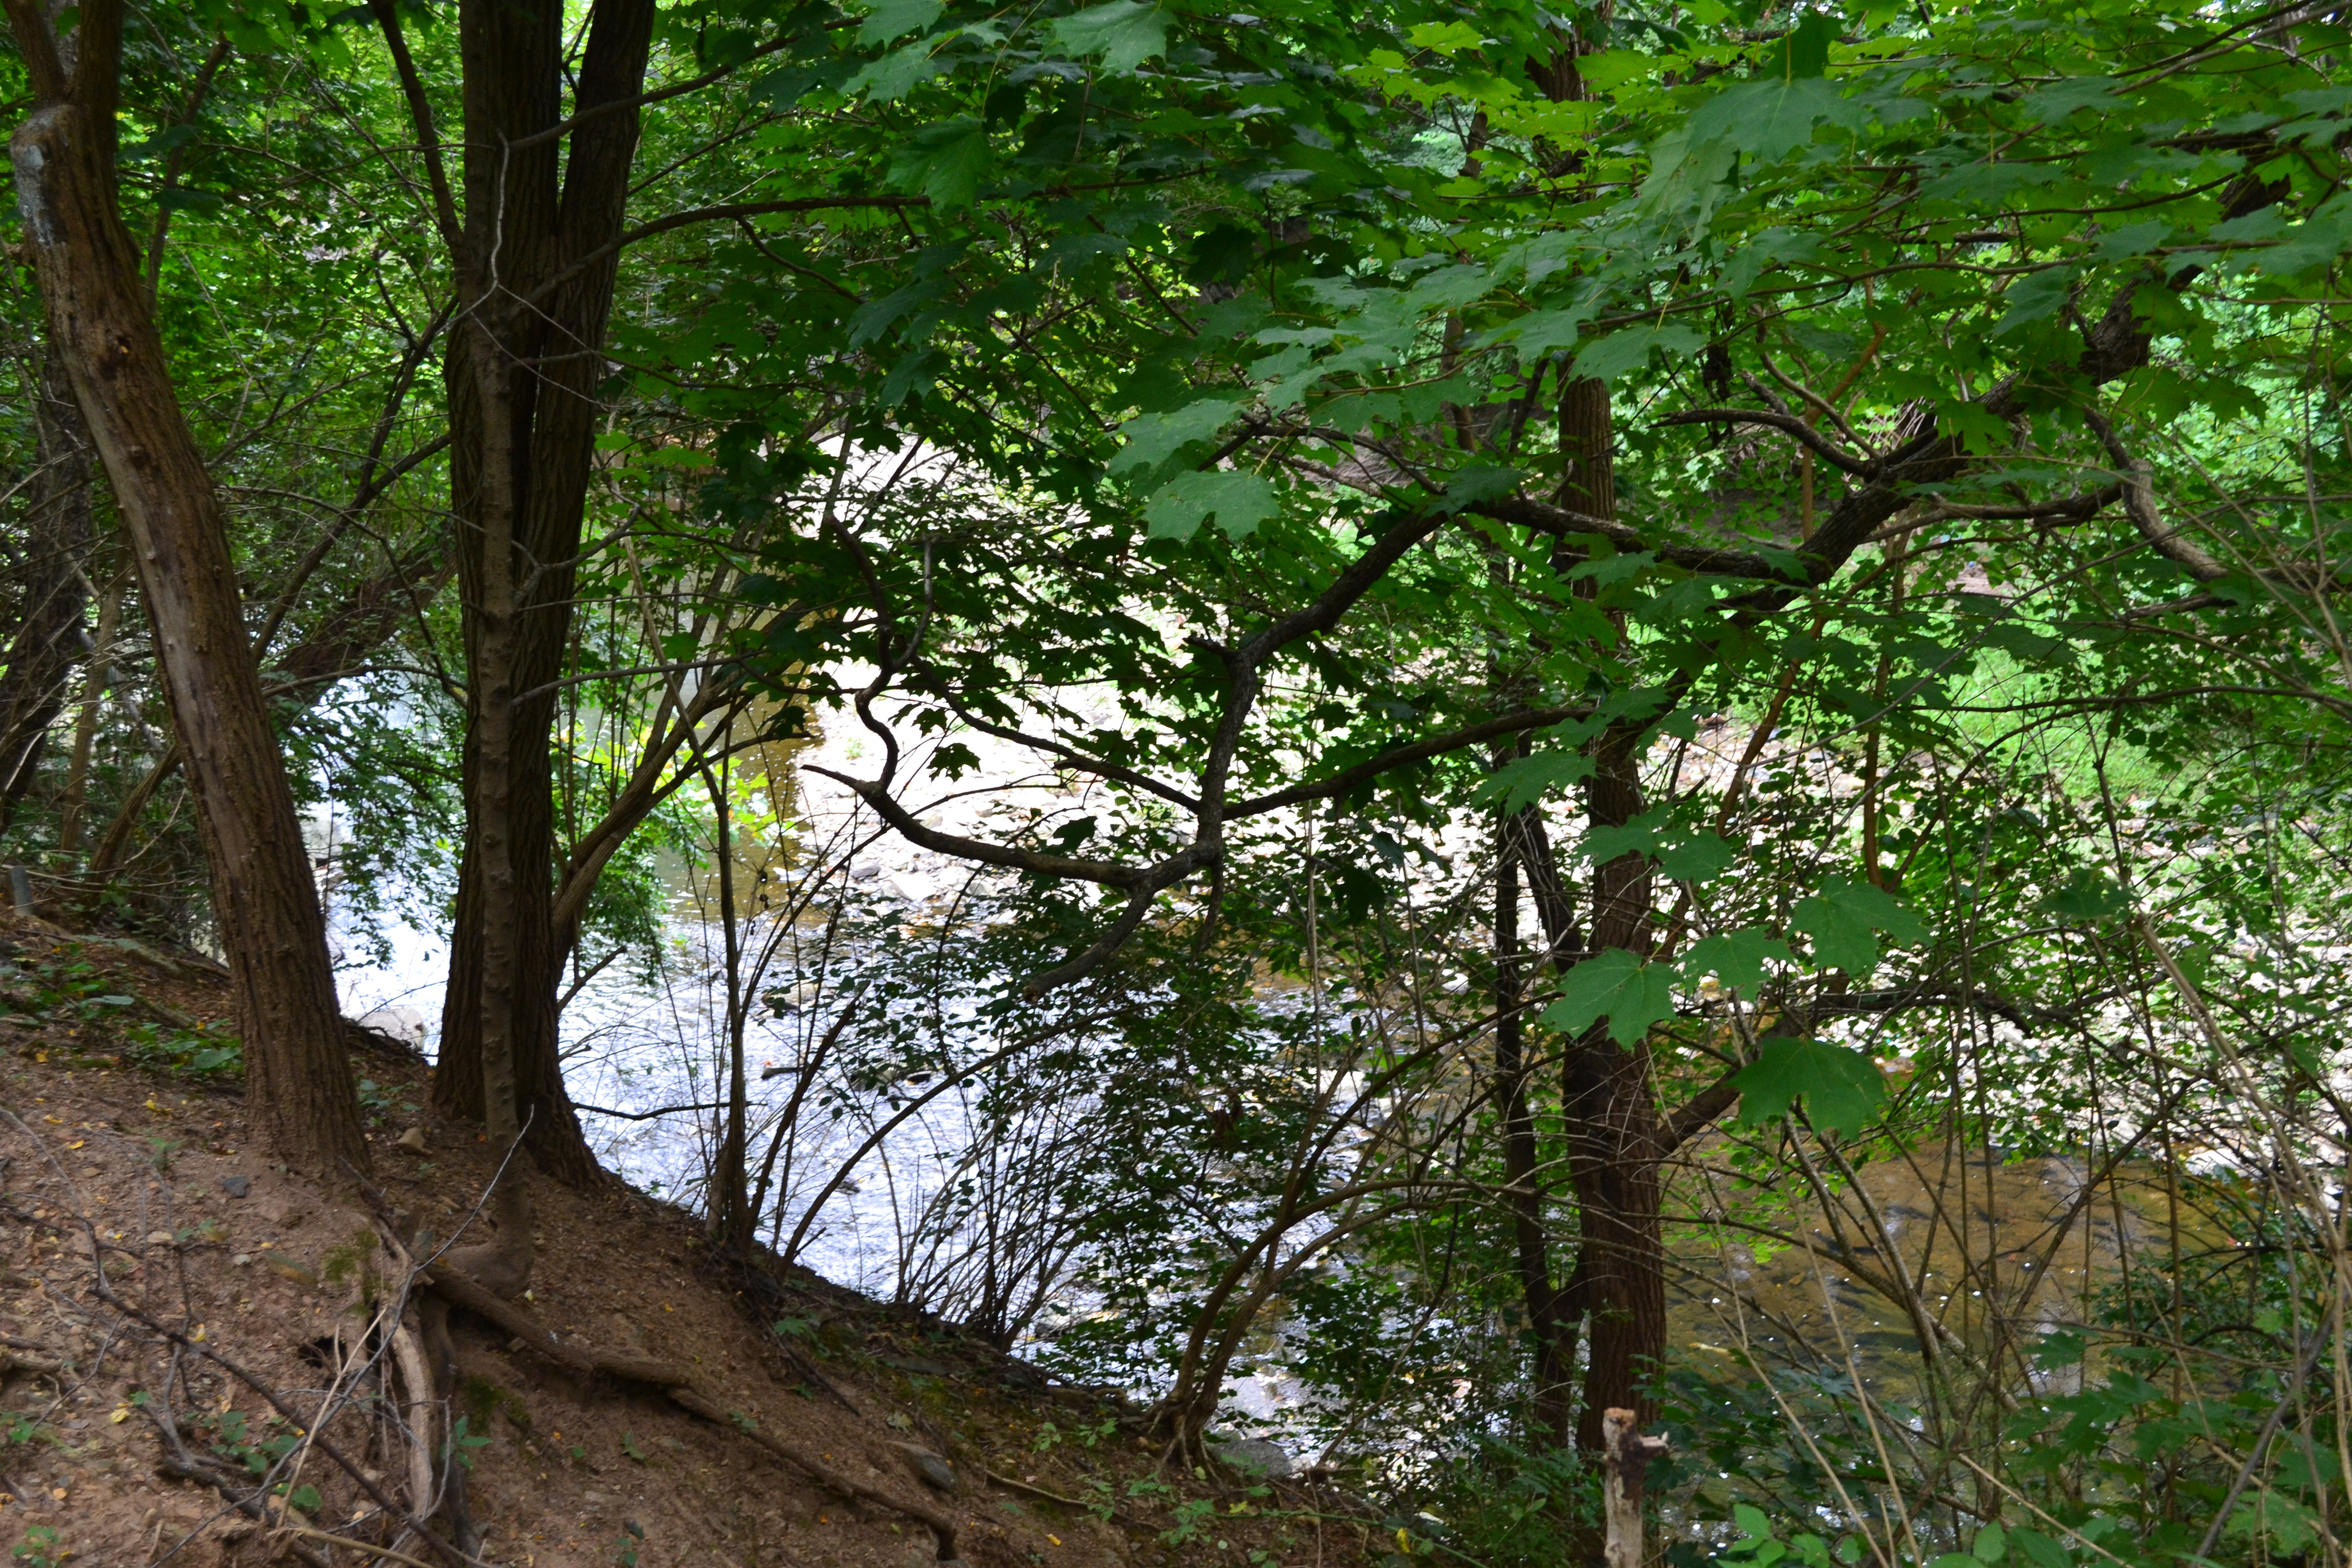 The off-road trails offer glimpses of Cobbs Creek